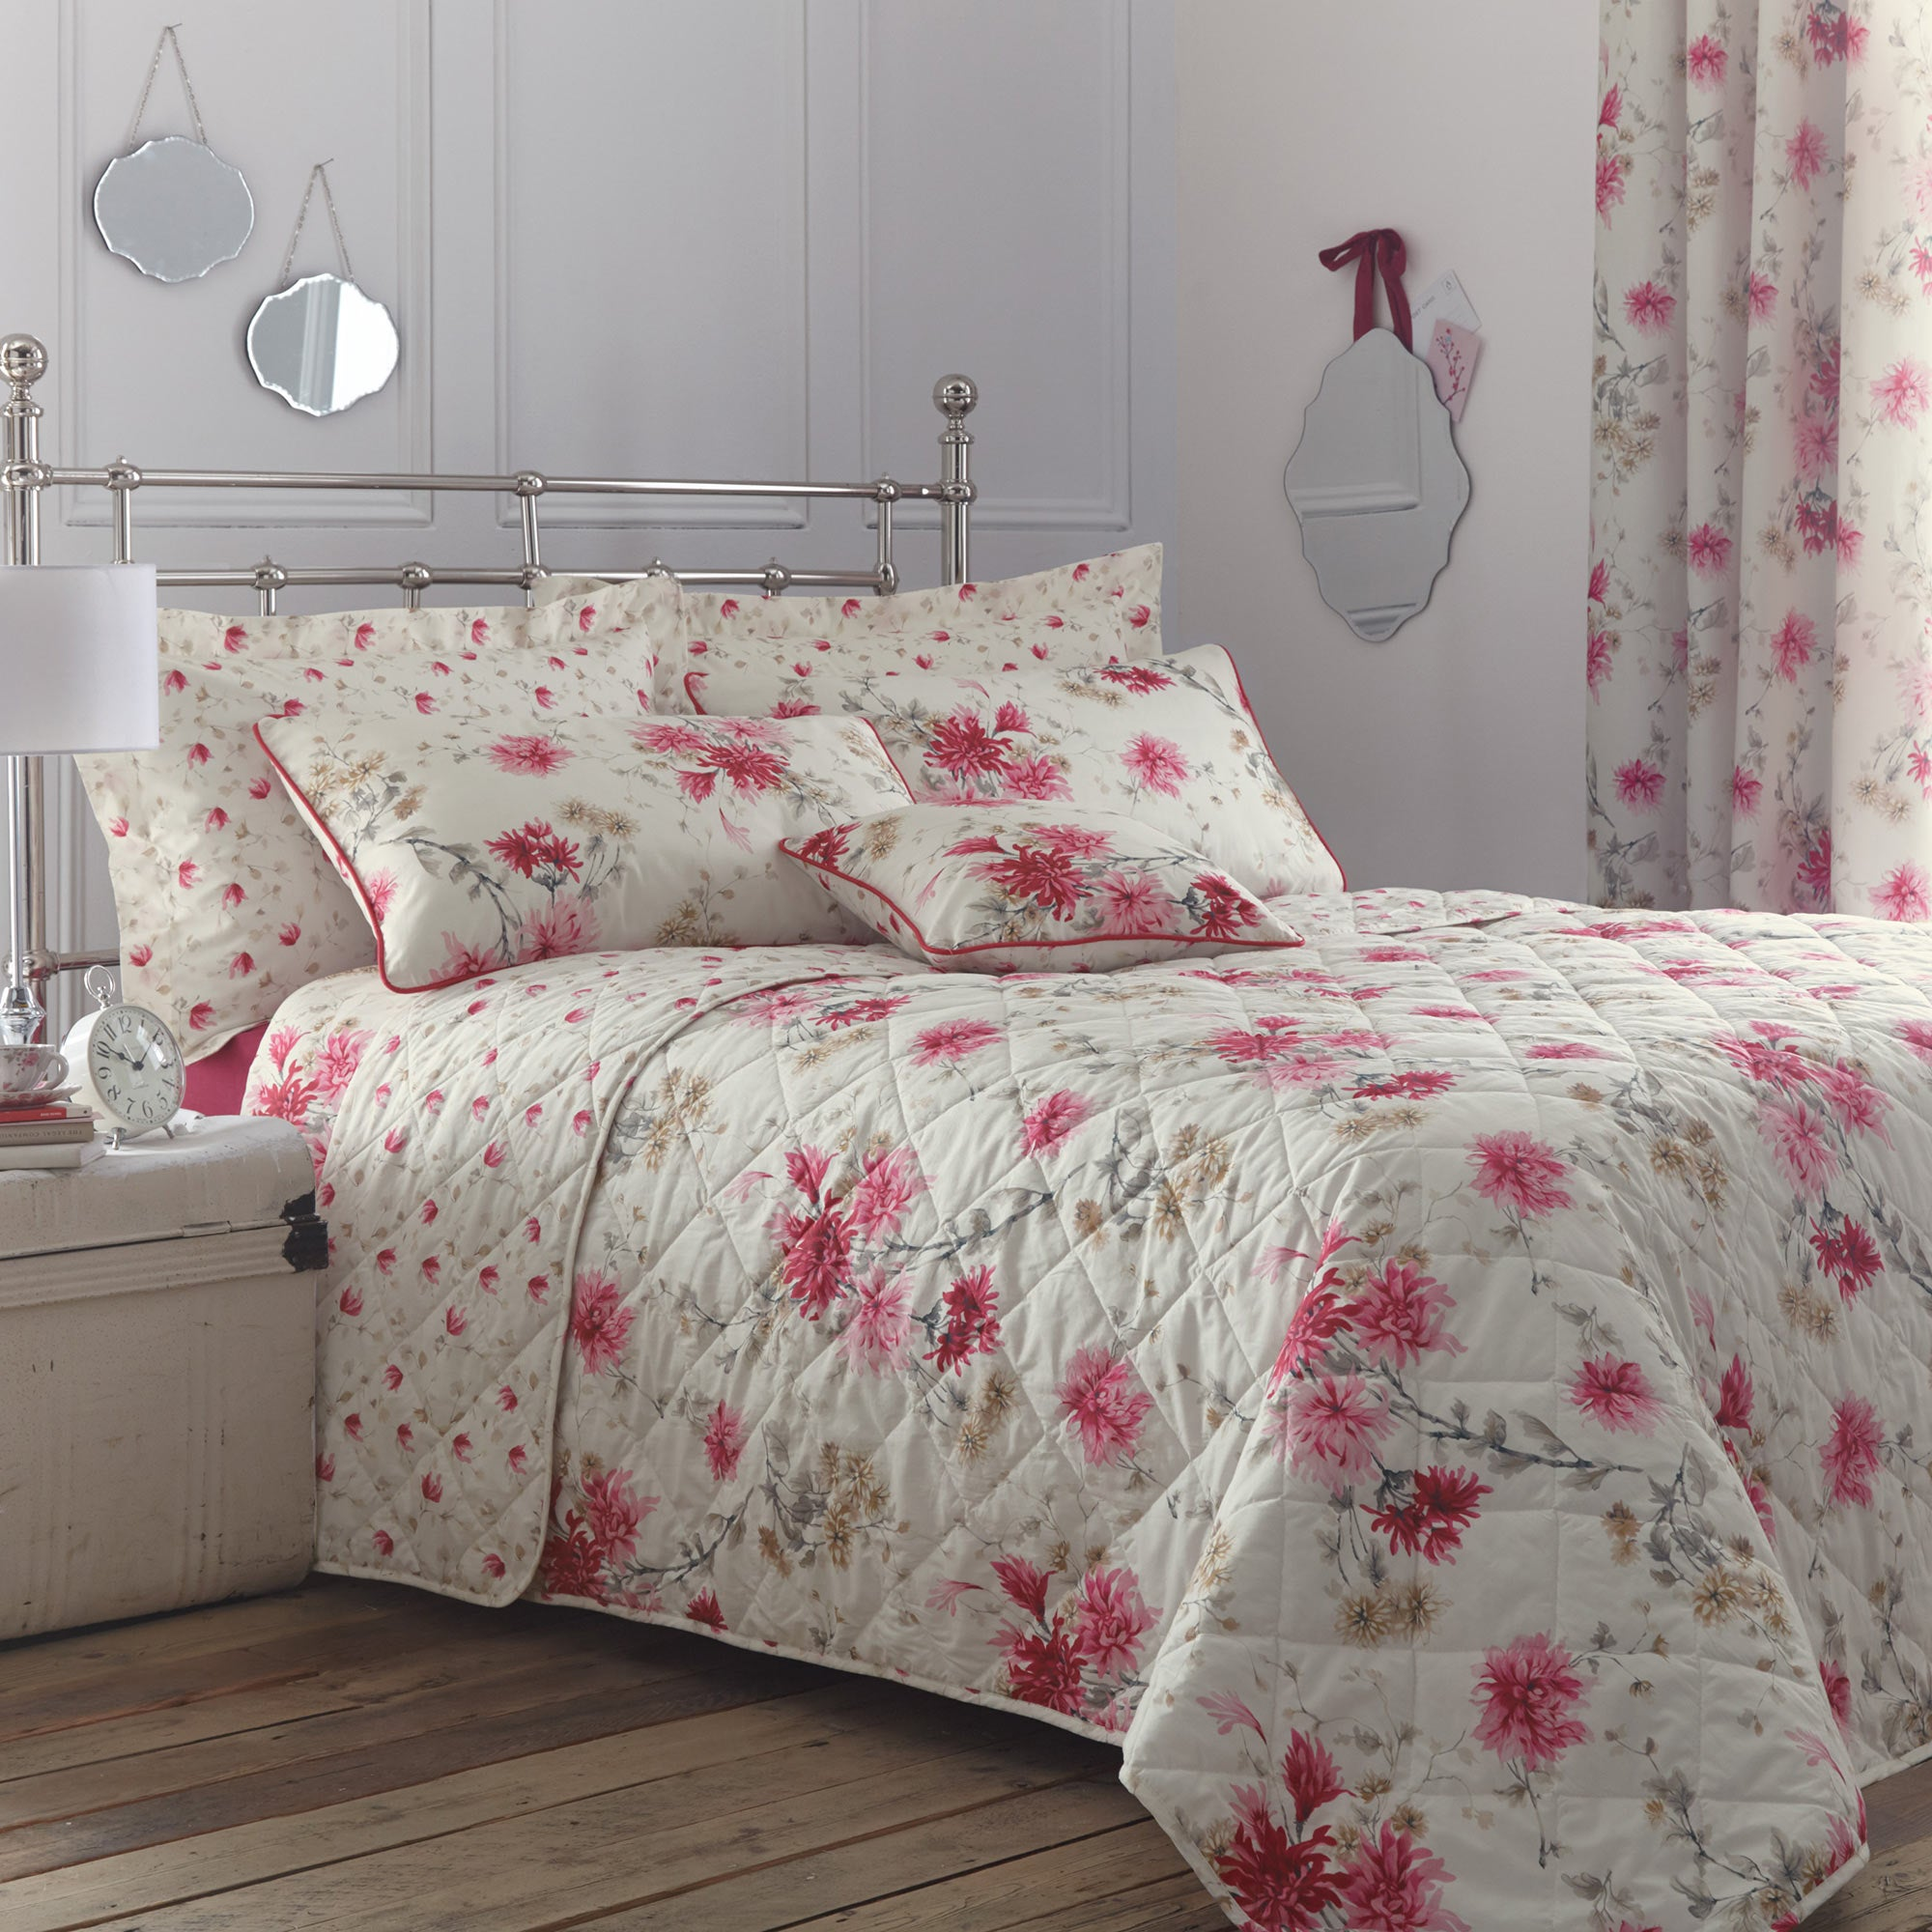 Image of Analise Pink Bedspread Pink